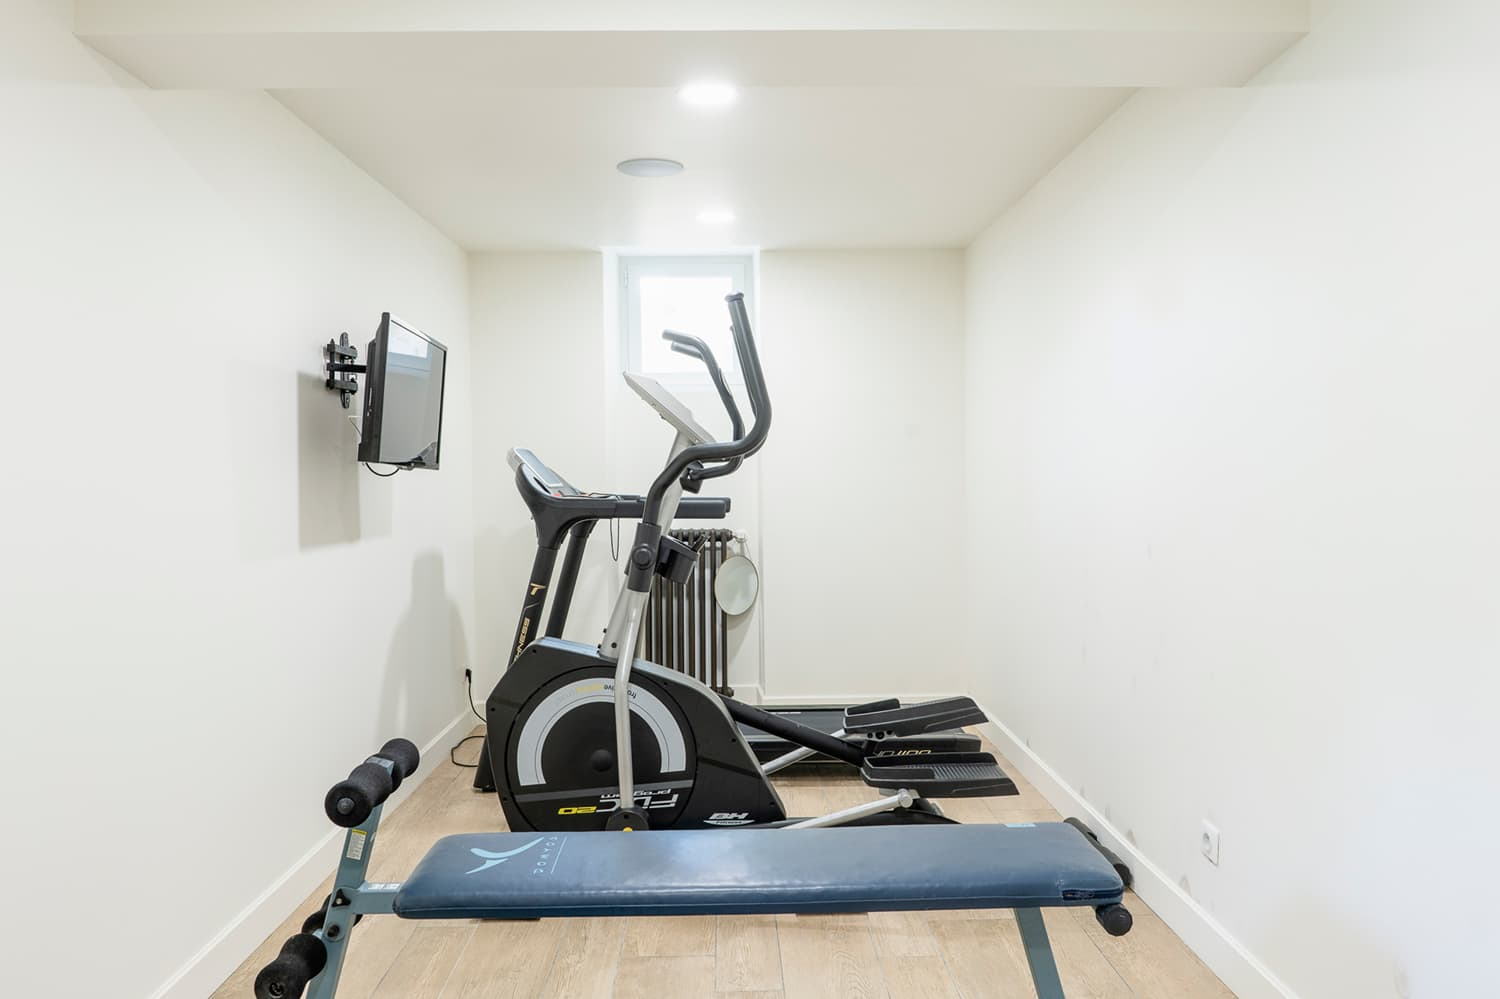 Gym in South West France holiday accommodation